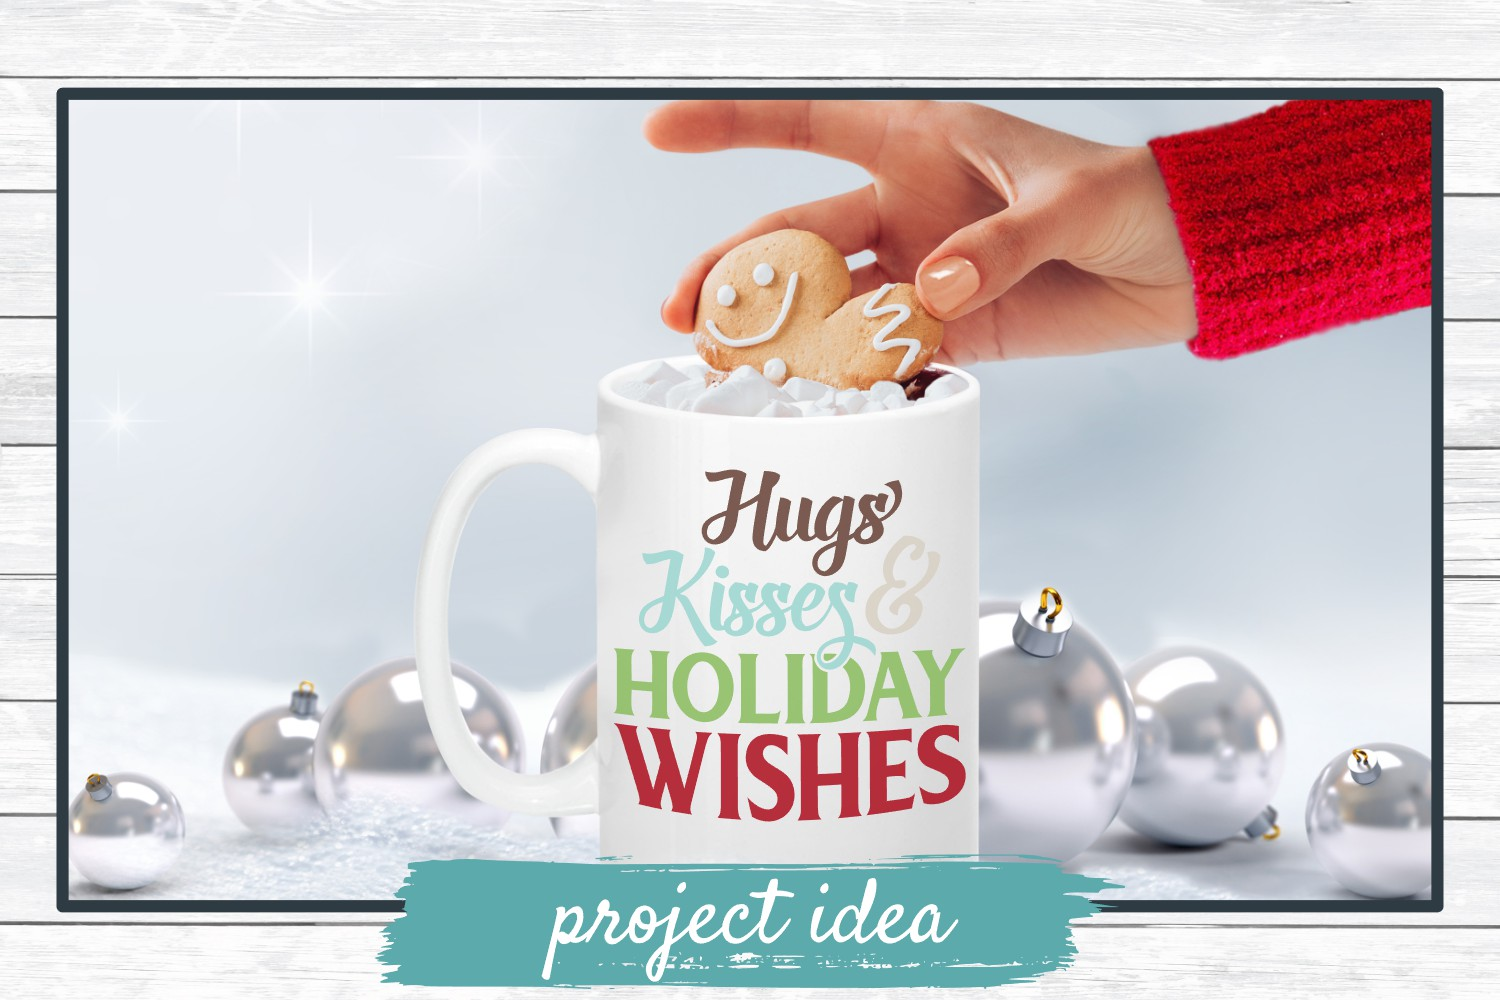 Hugs Kisses & Holiday Wishes, Winter Holiday SVG Cut File example image 2